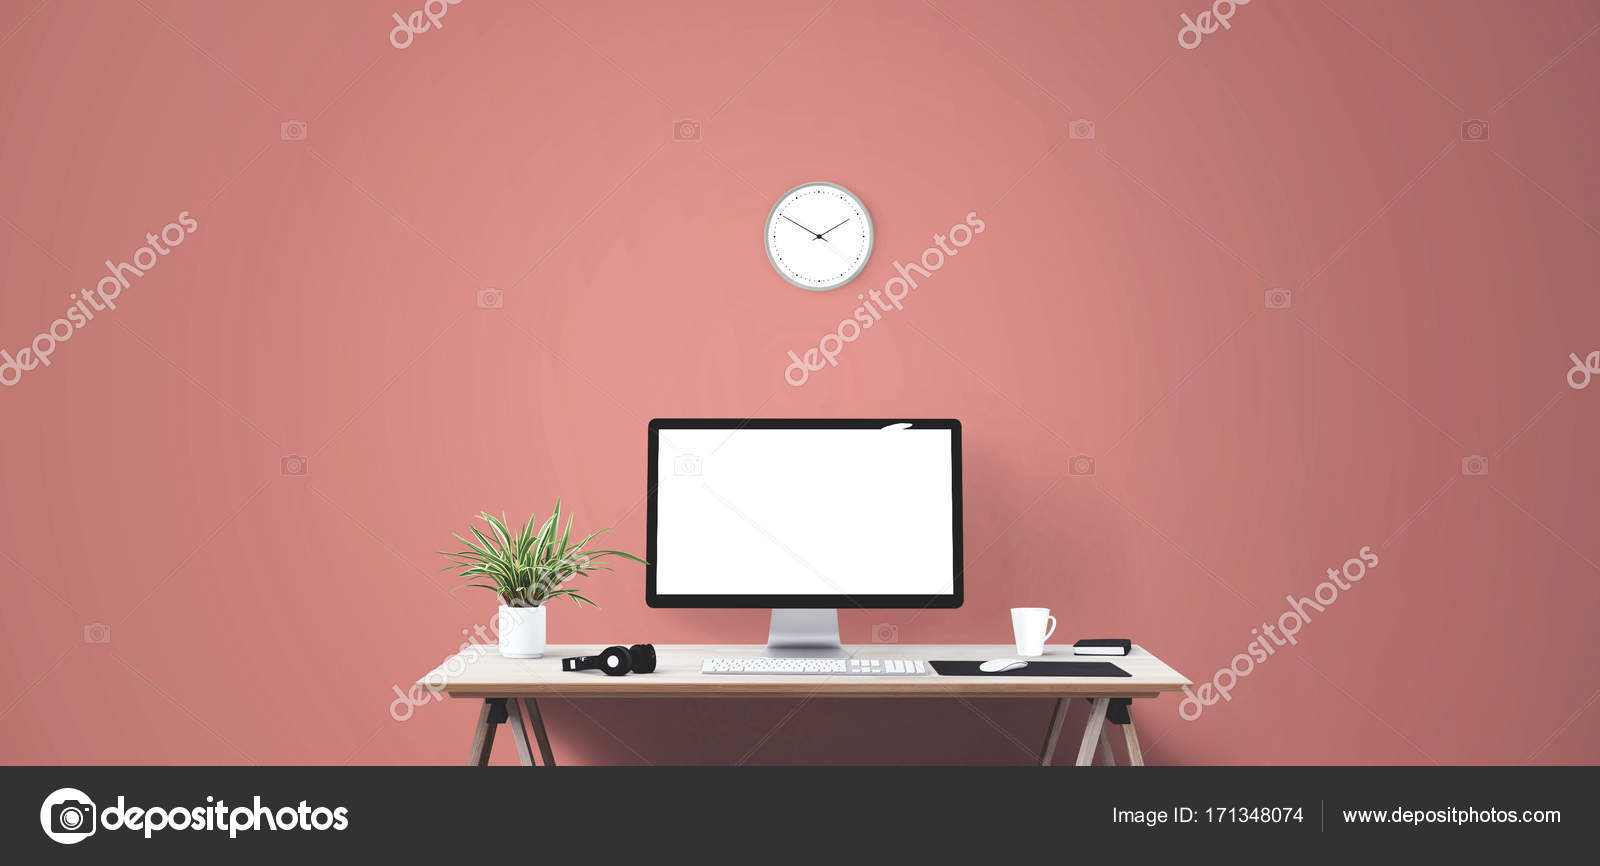 Must see Wallpaper Home Screen Creative - depositphotos_171348074-stock-photo-background-banner-book-business-clock  Perfect Image Reference_575256.jpg